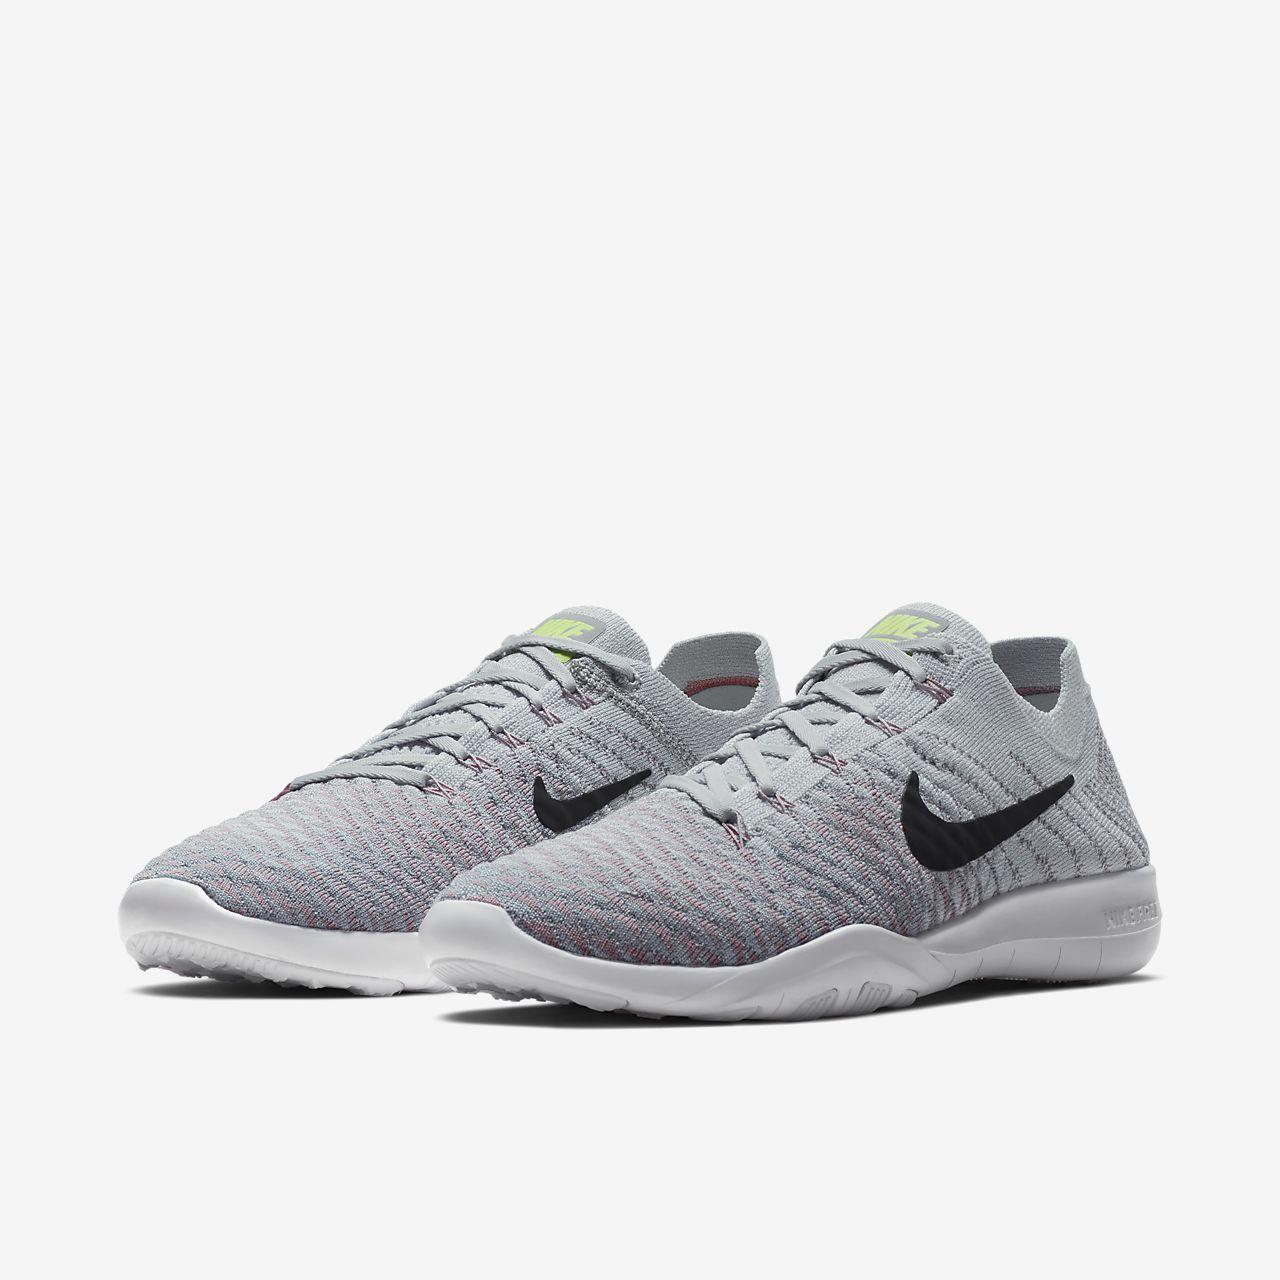 Chaussures Nike Free Flyknit Tr